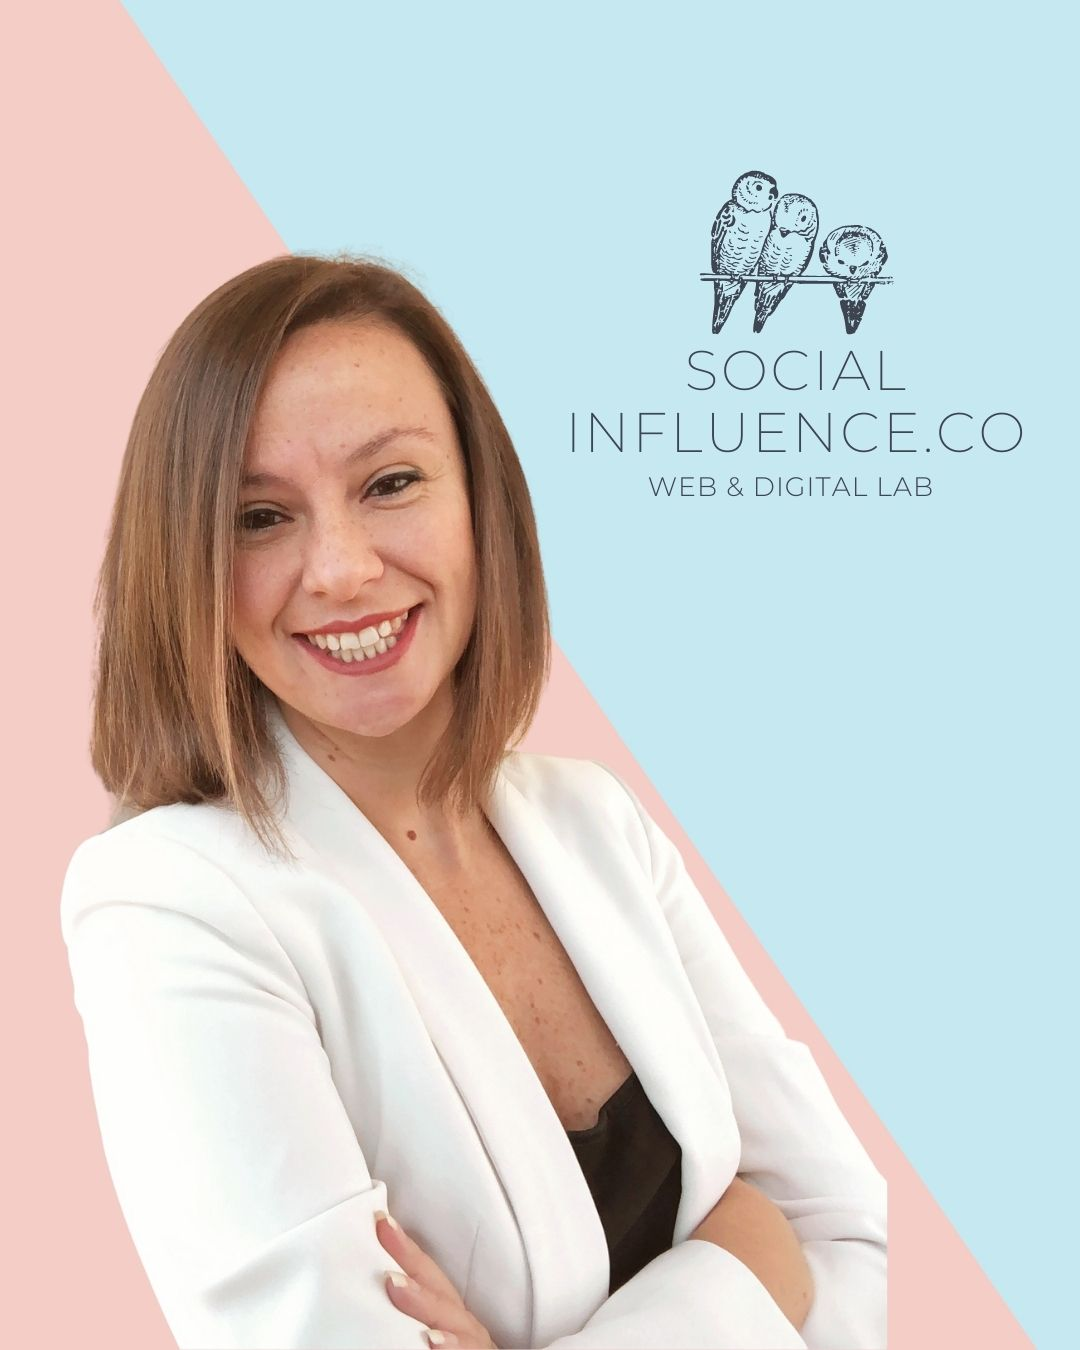 social influence web and digital lab founder